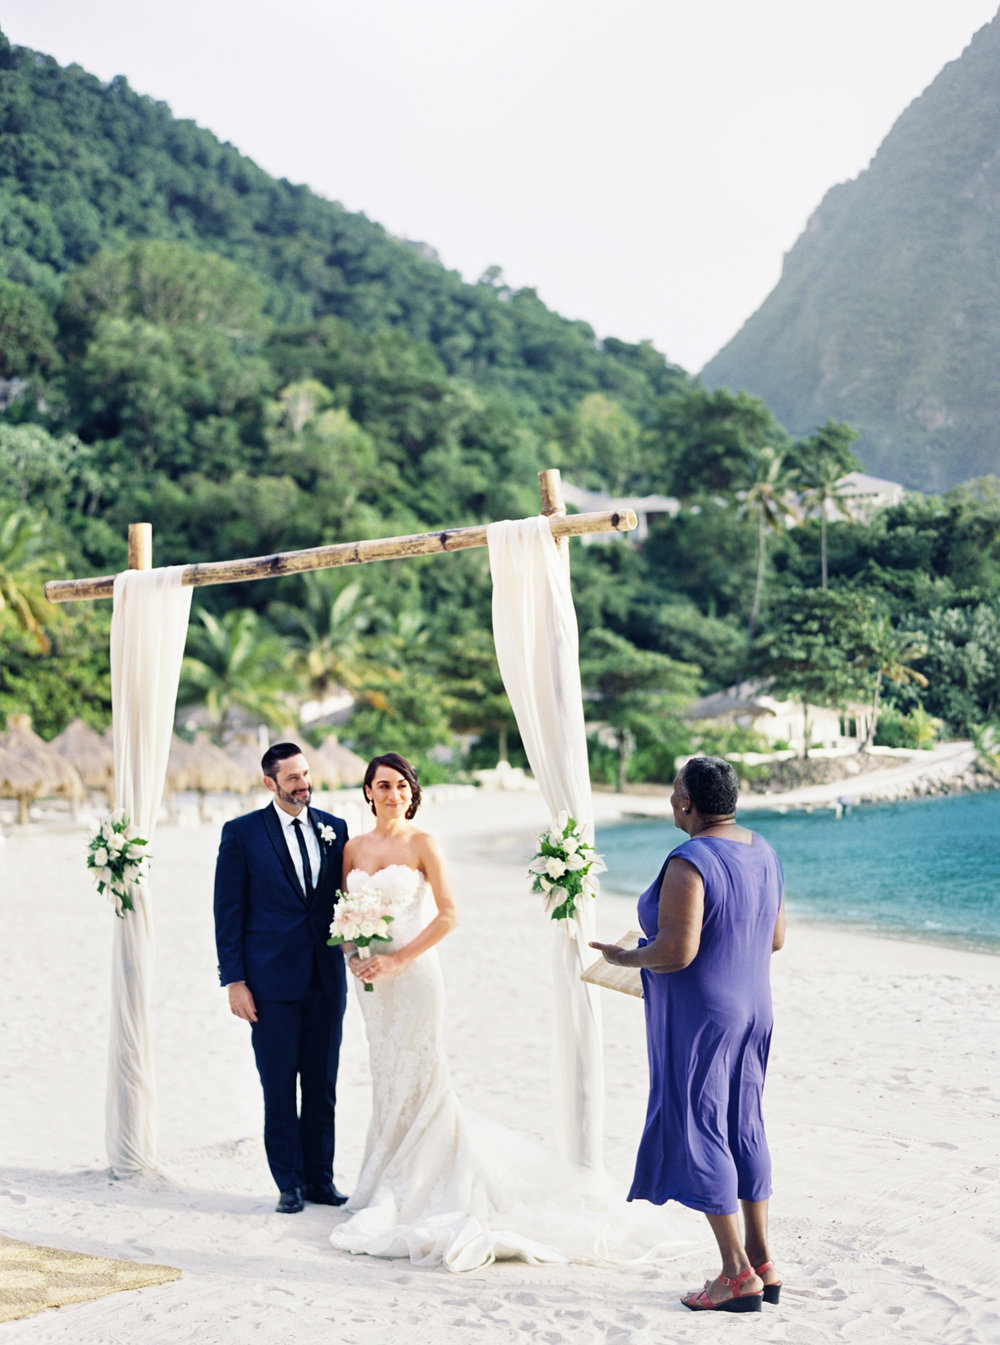 078Delmary's & Daniel : ELOPEMENT : ST. LUCIA : CARIBBEAN : PHOTO & VIDEO : DESTINATION : OUTLIVE CREATIVE : 2016 .jpg